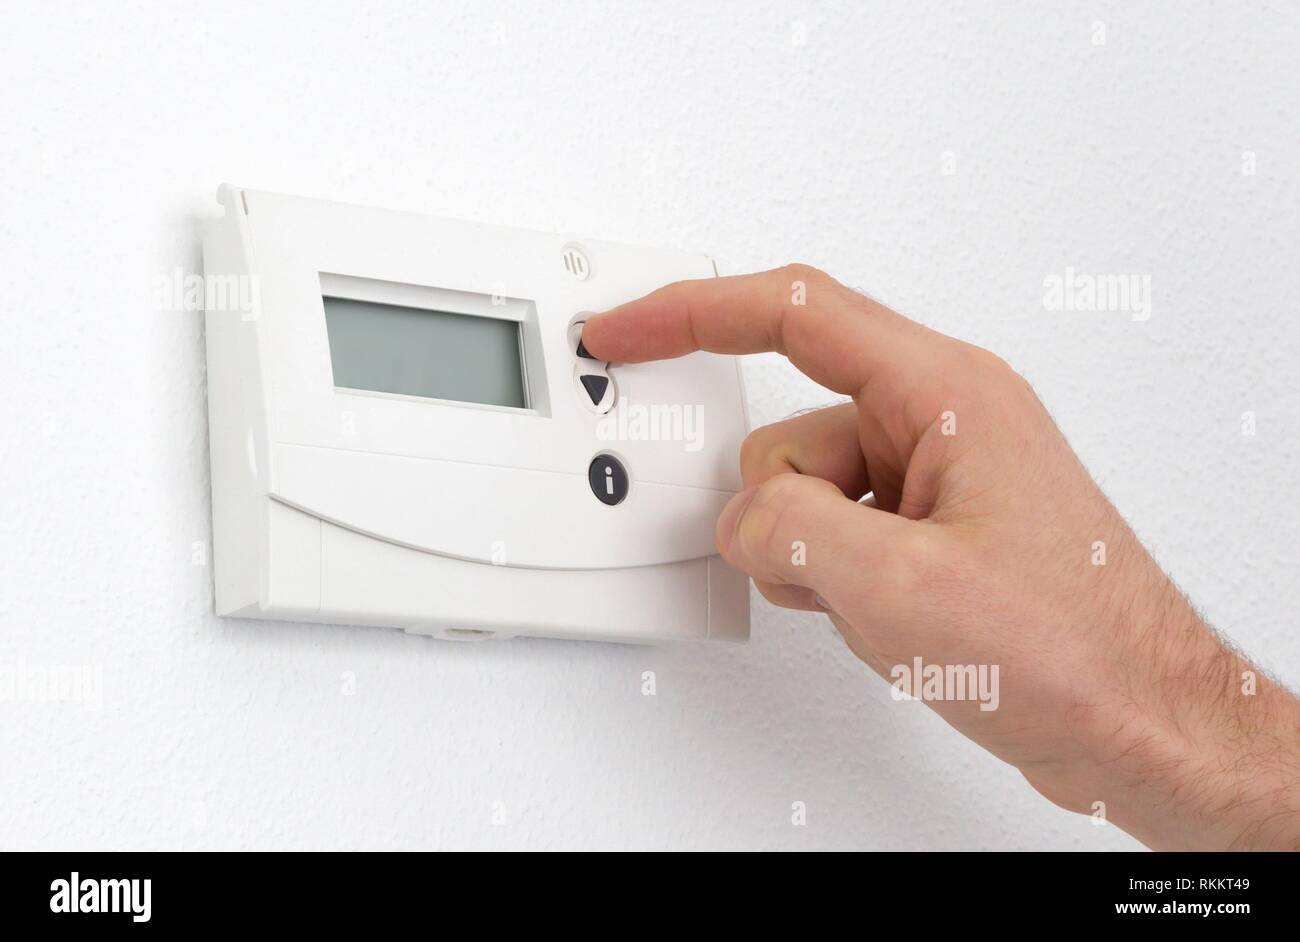 Freezing Temperature Thermostat Stock Photos & Freezing